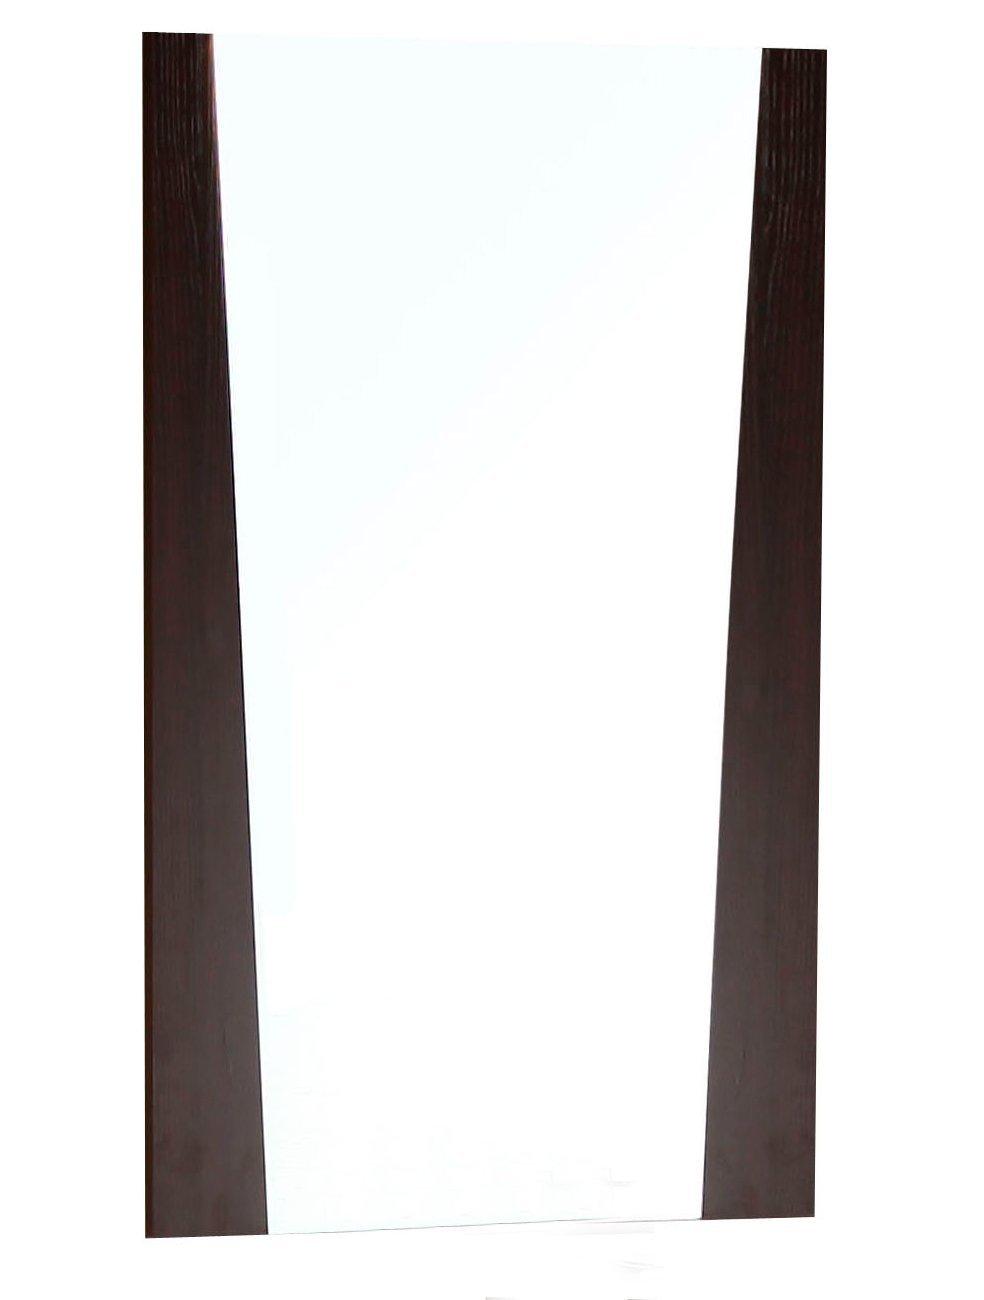 American Imaginations AI-1184 28-in. W x 34-in. H Wood Frame Mirror In Wenge Finish